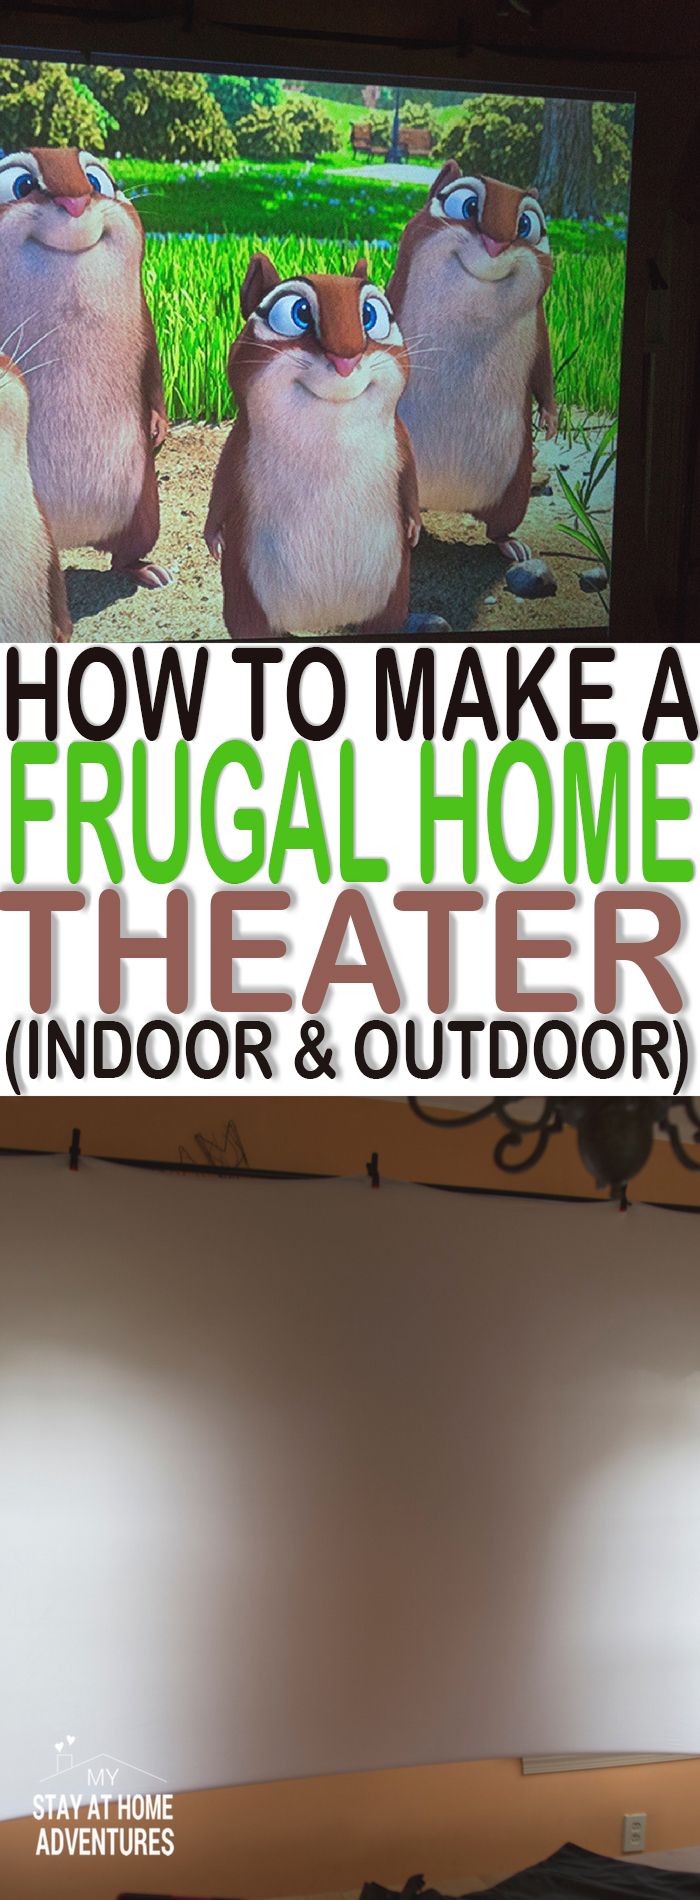 Learn how you can create your own good quality frugal home theater. How we kept cost down and made a fun activity our family will enjoy.